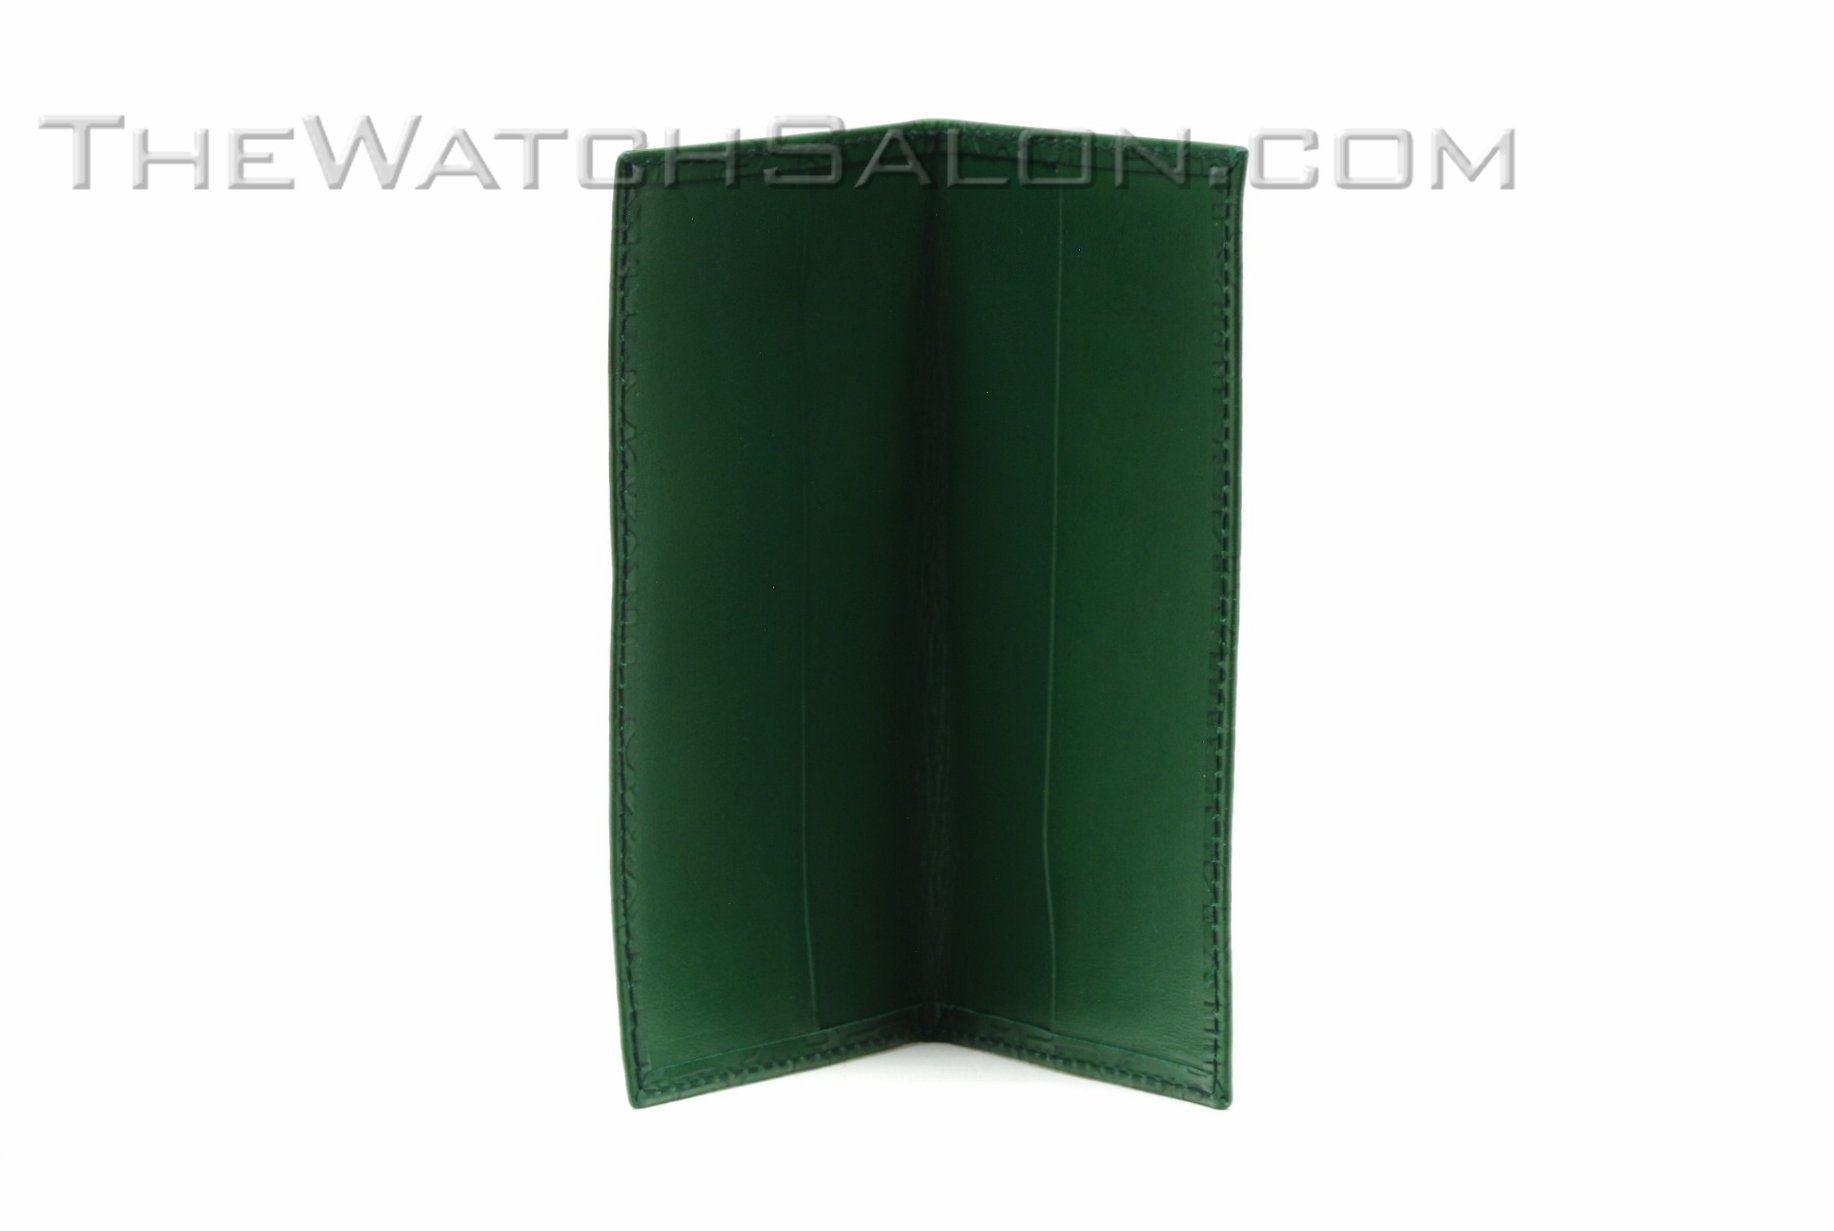 rolex diary holder in green learther